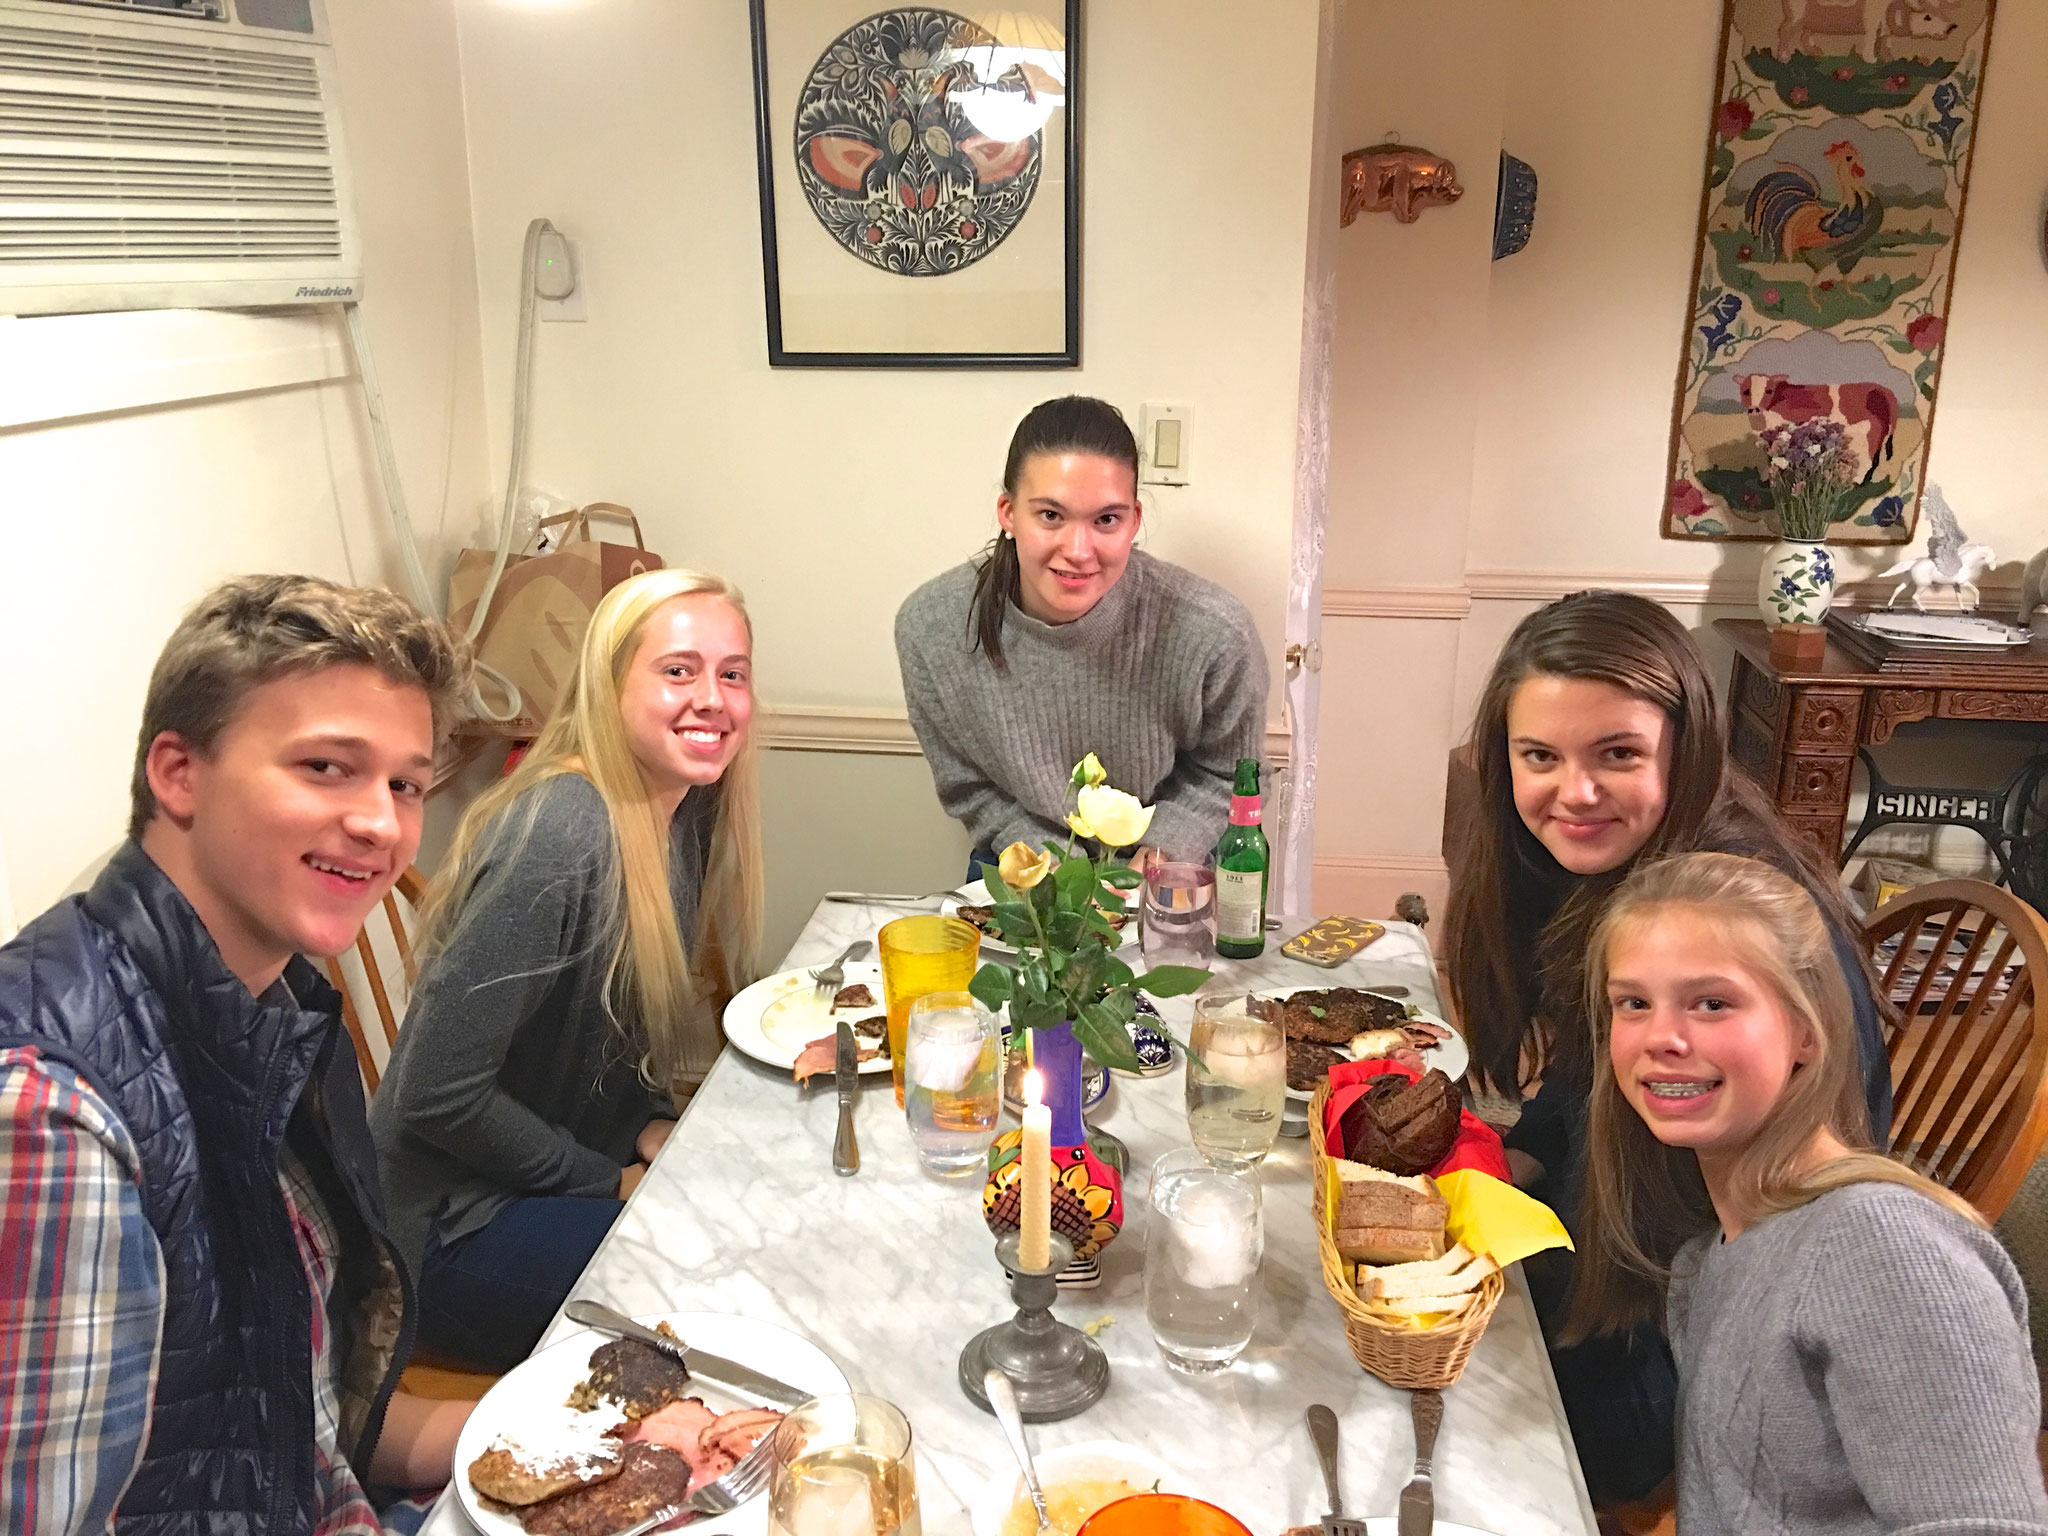 Jack, Brooke, Ellie, Kate, & Brianna   Nov. 2016 NYC